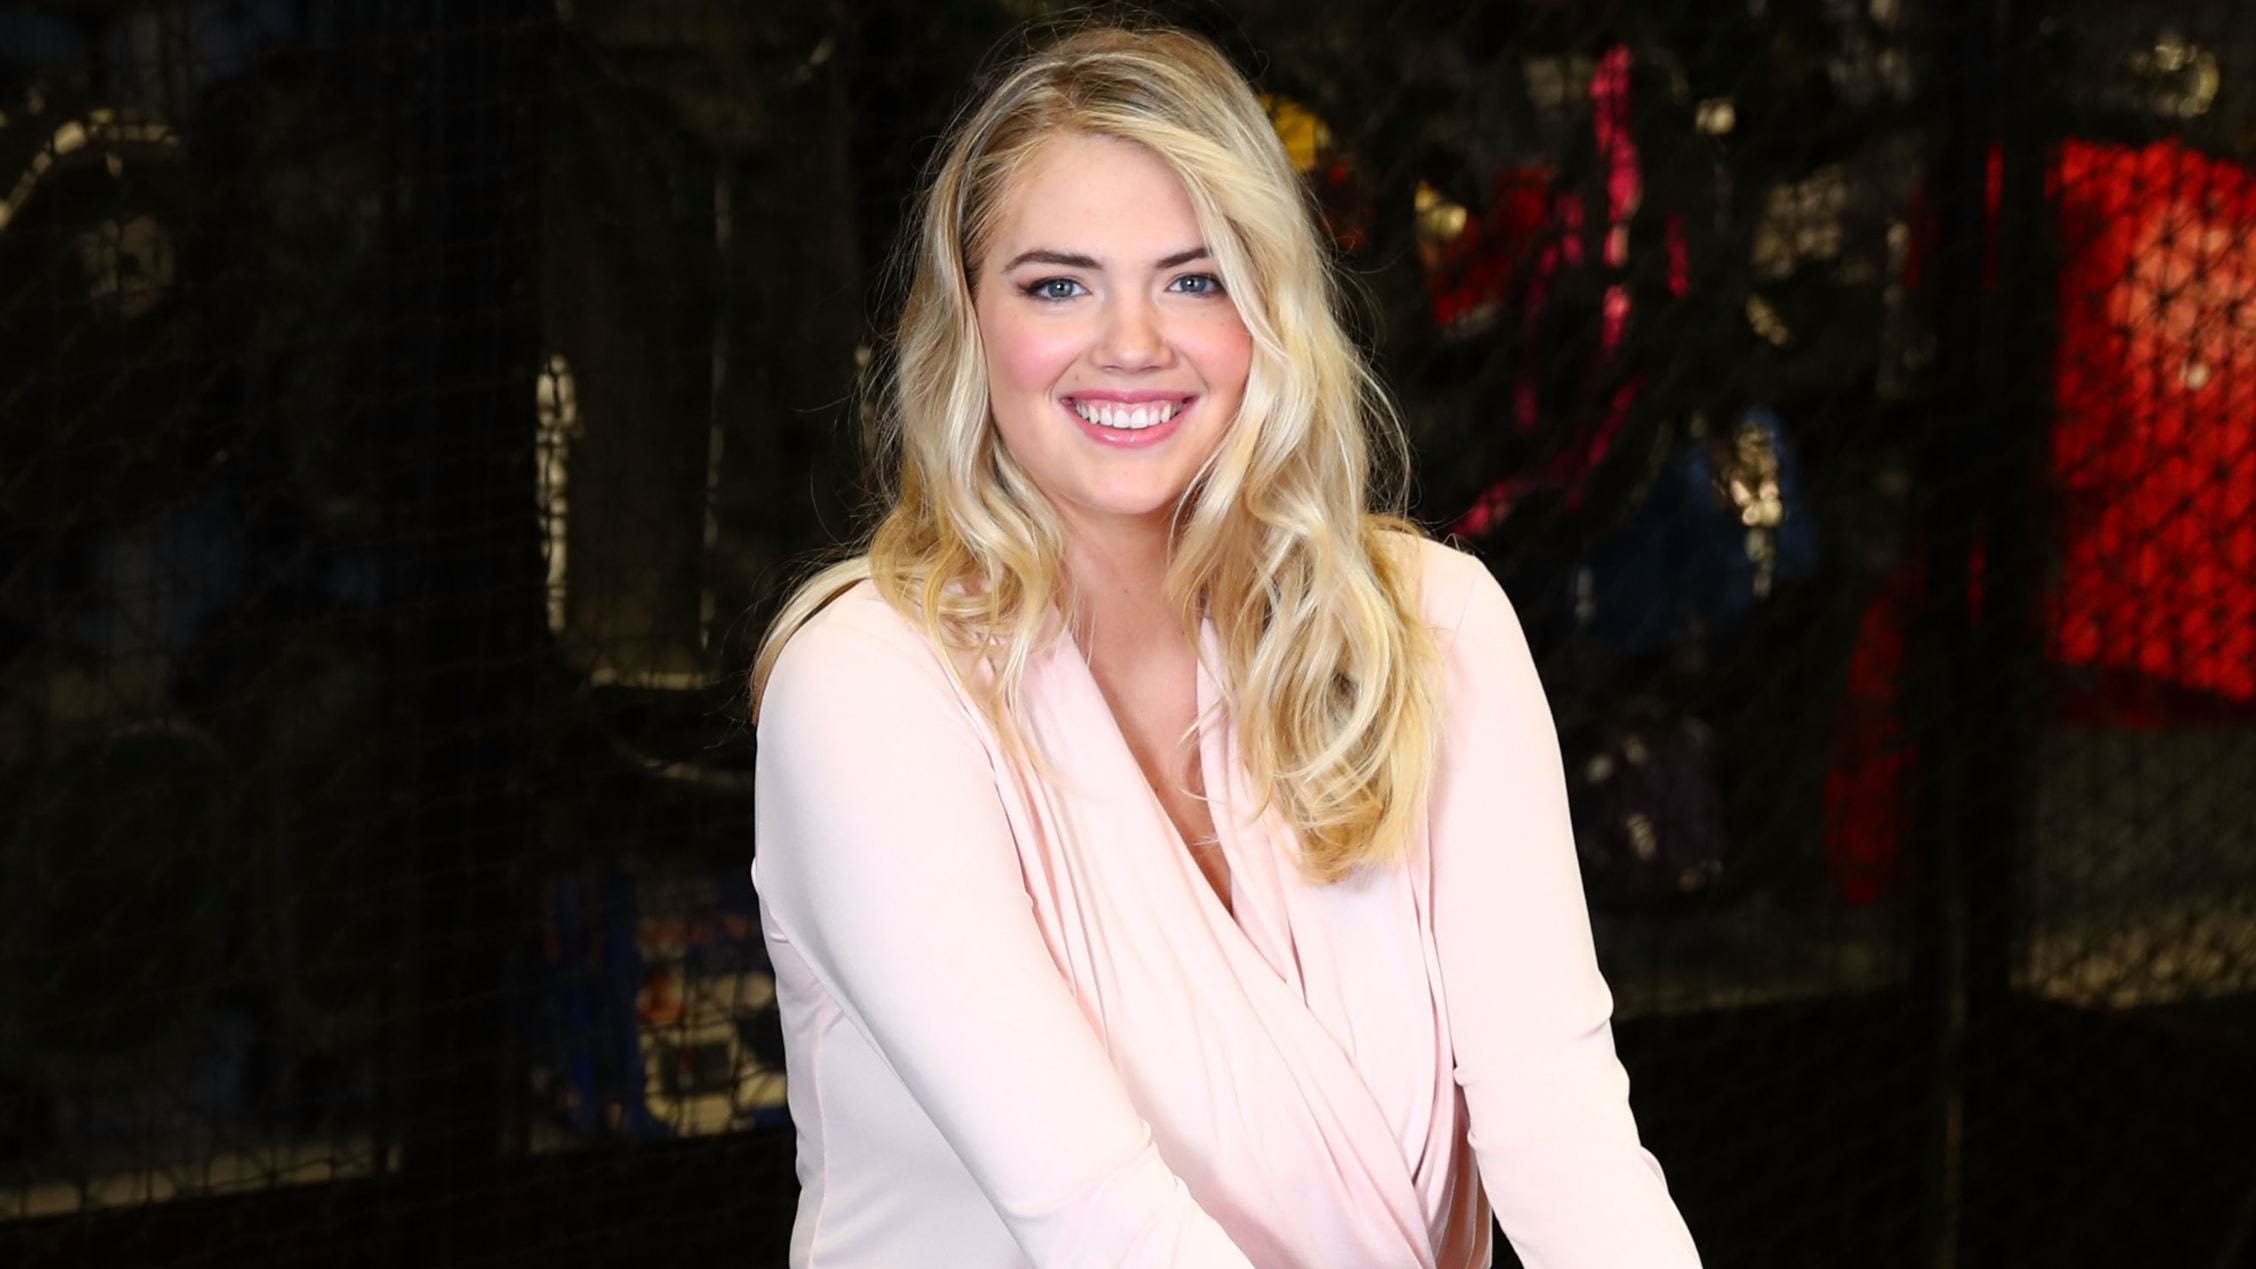 Sports Illustrated model Kate Upton shares honest 'pregame' breast-pumping picture